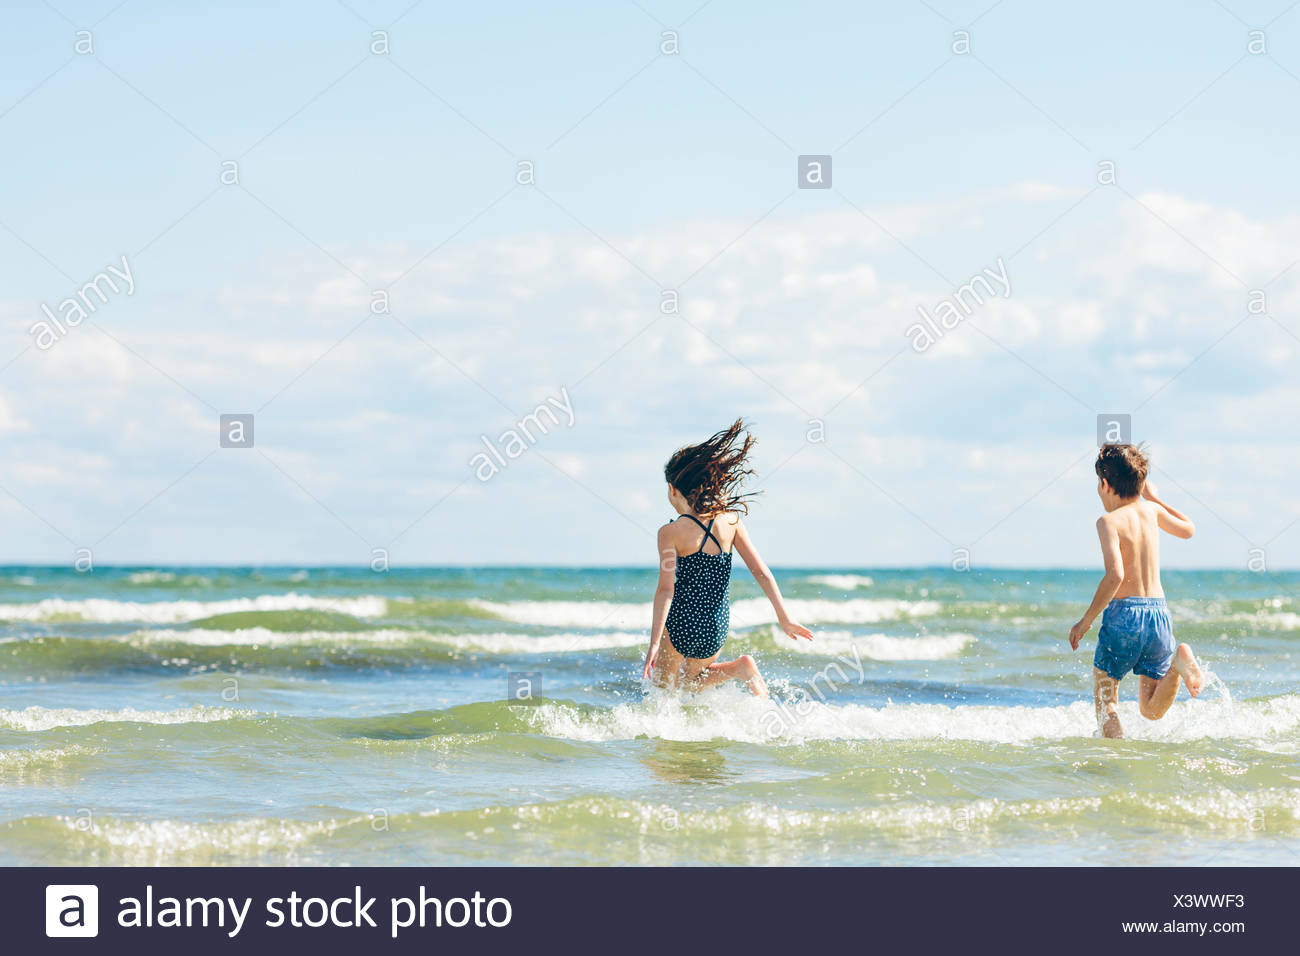 Girl (10-11) and boy (8-9) running into sea - Stock Image